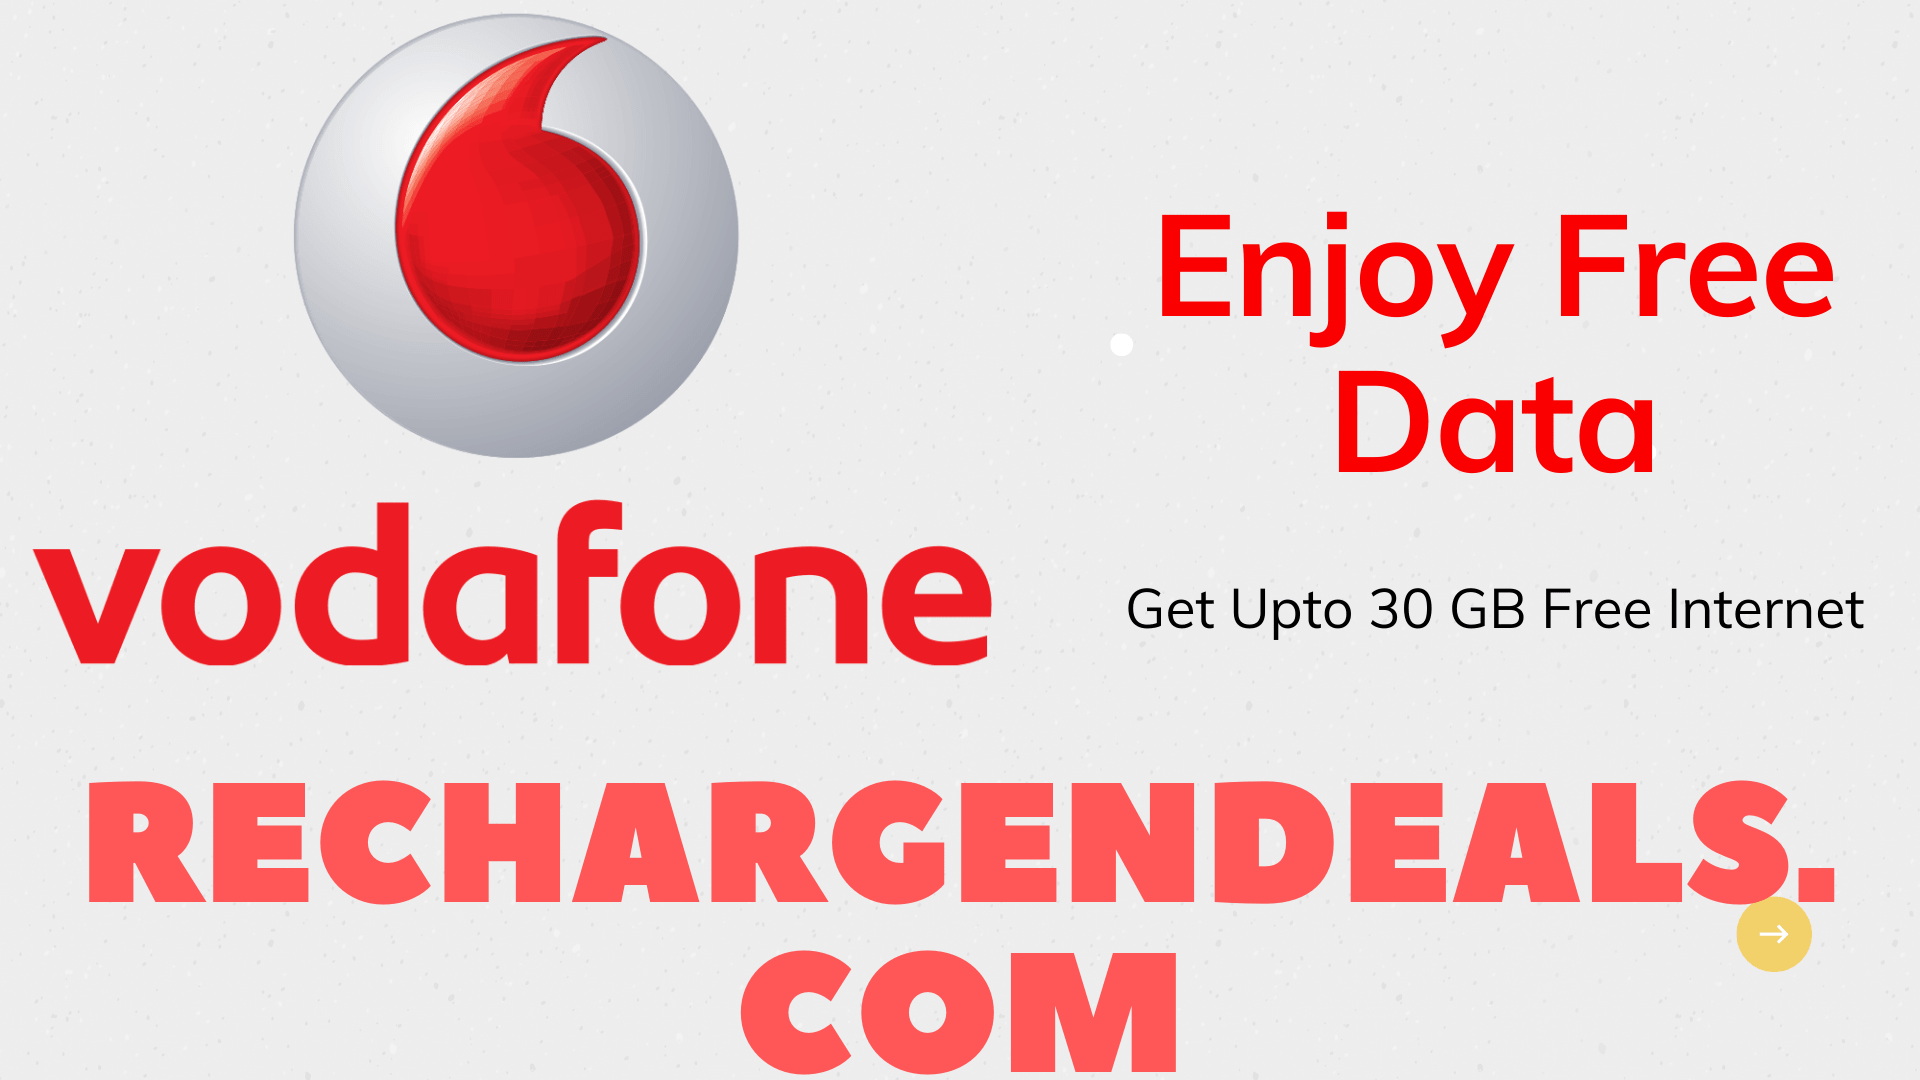 Vodafone Free Data